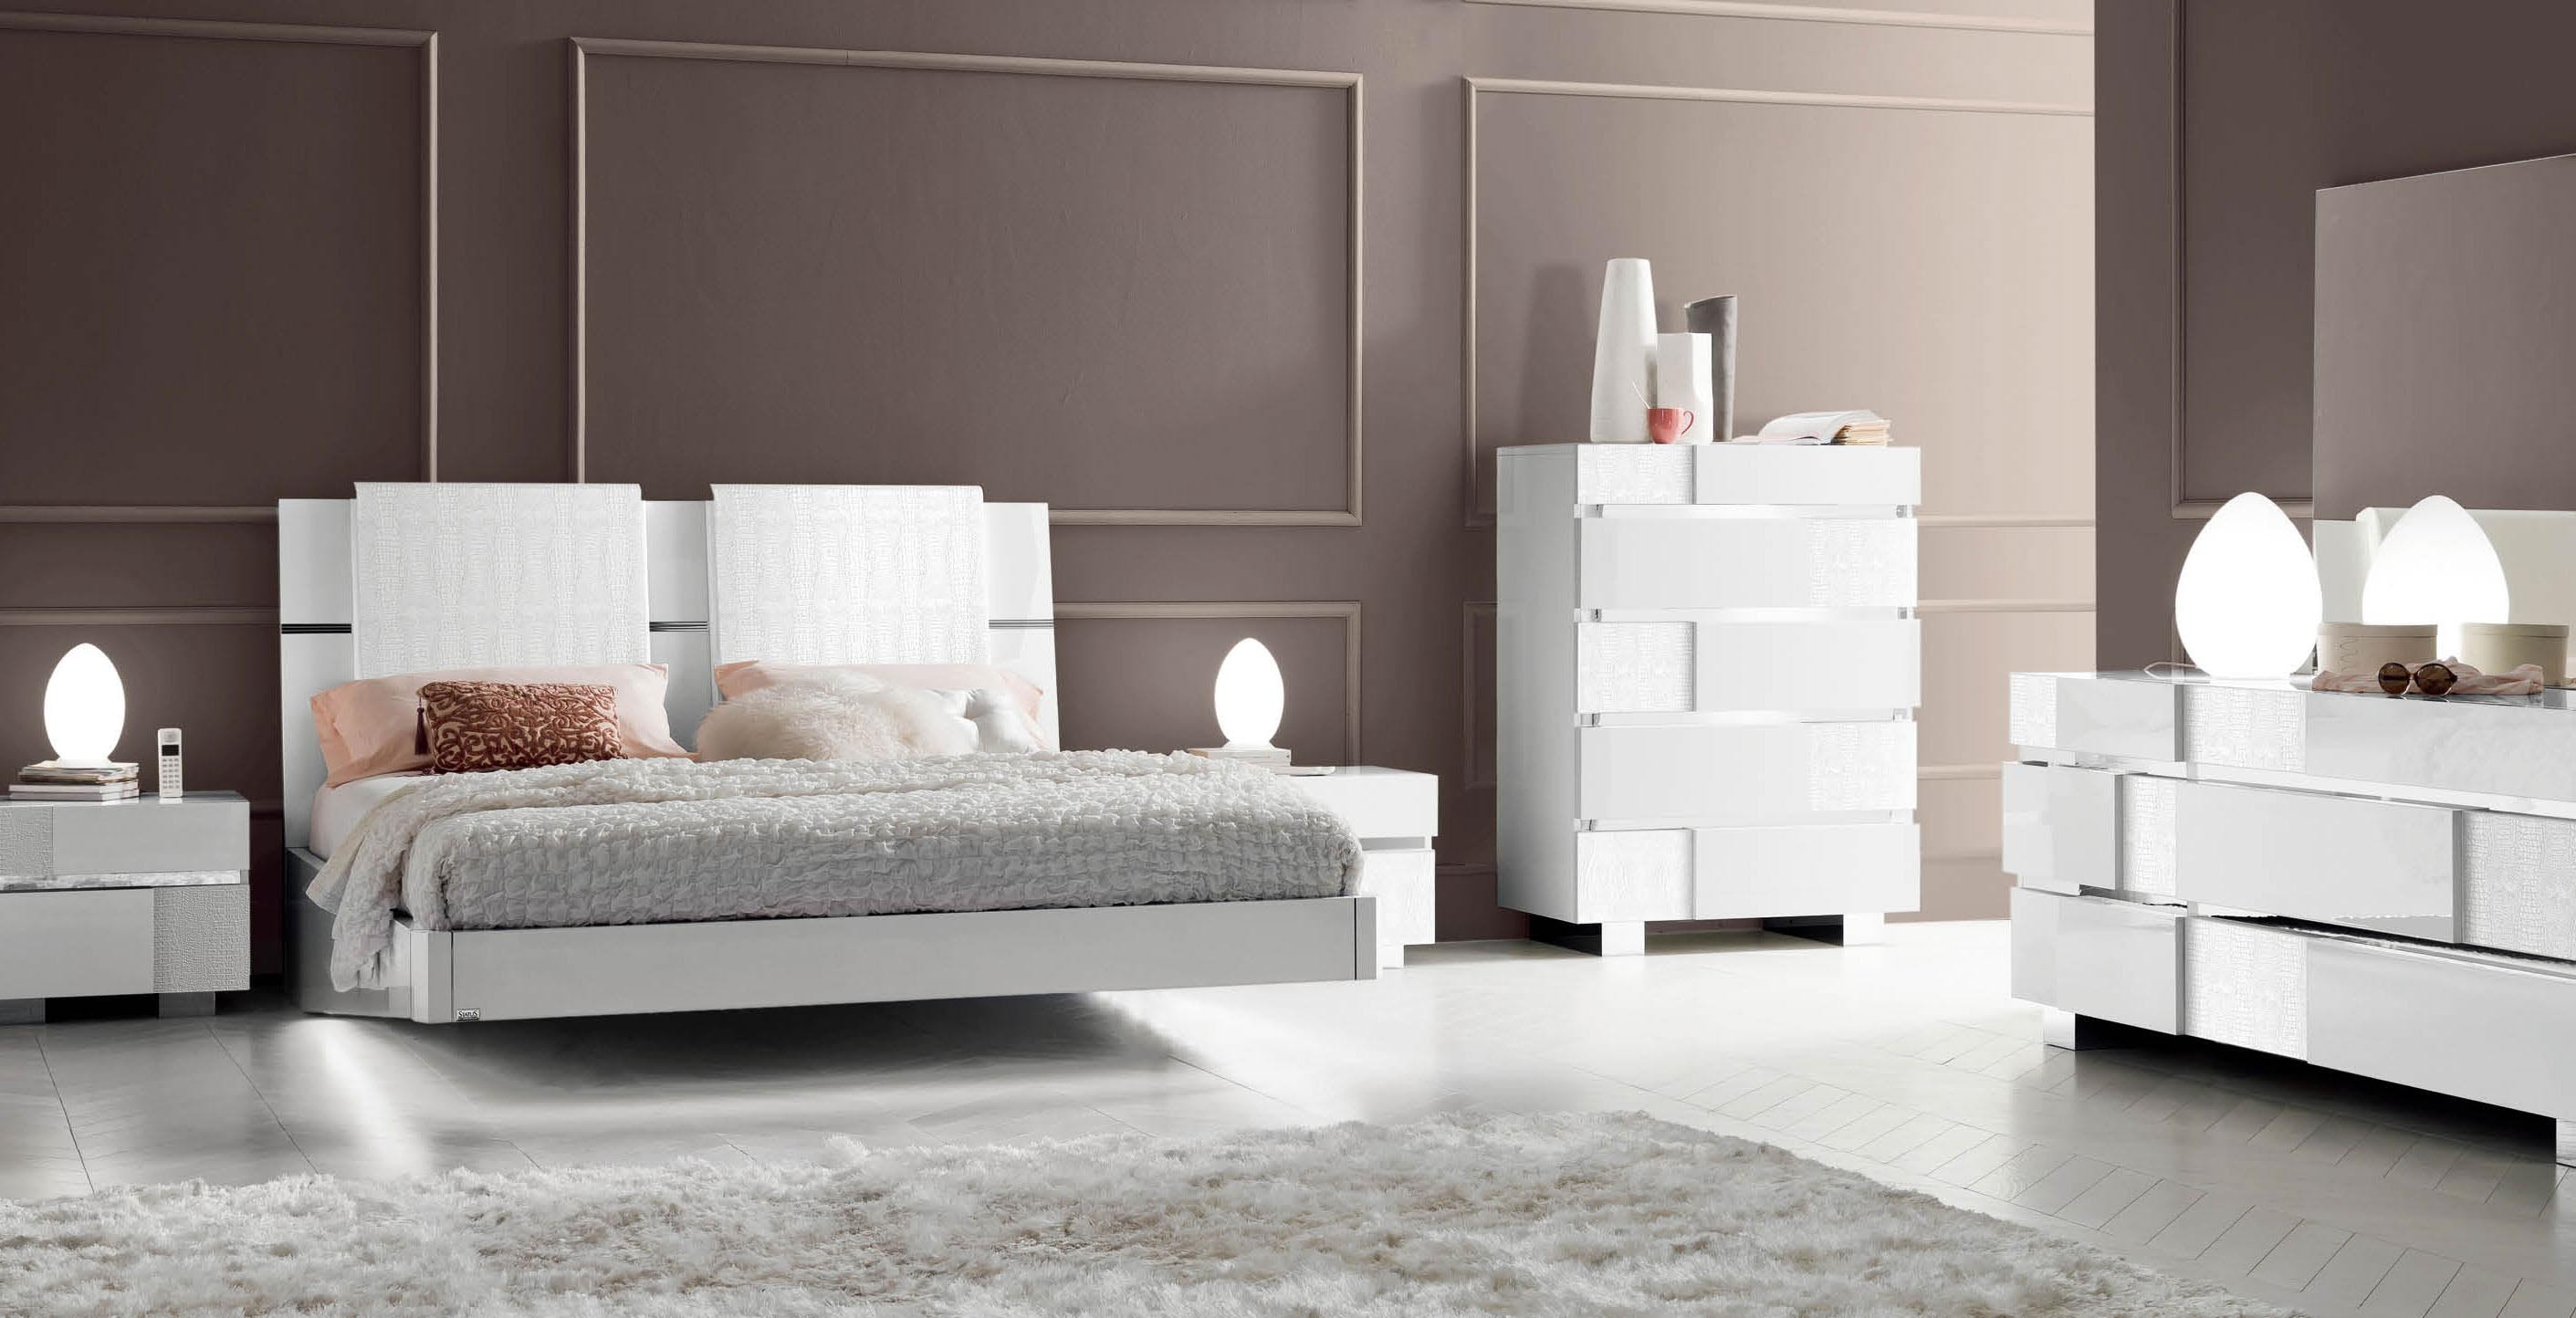 Italian Furniture Toronto Caprice White Modern Italian Bedroom Set N Star Modern